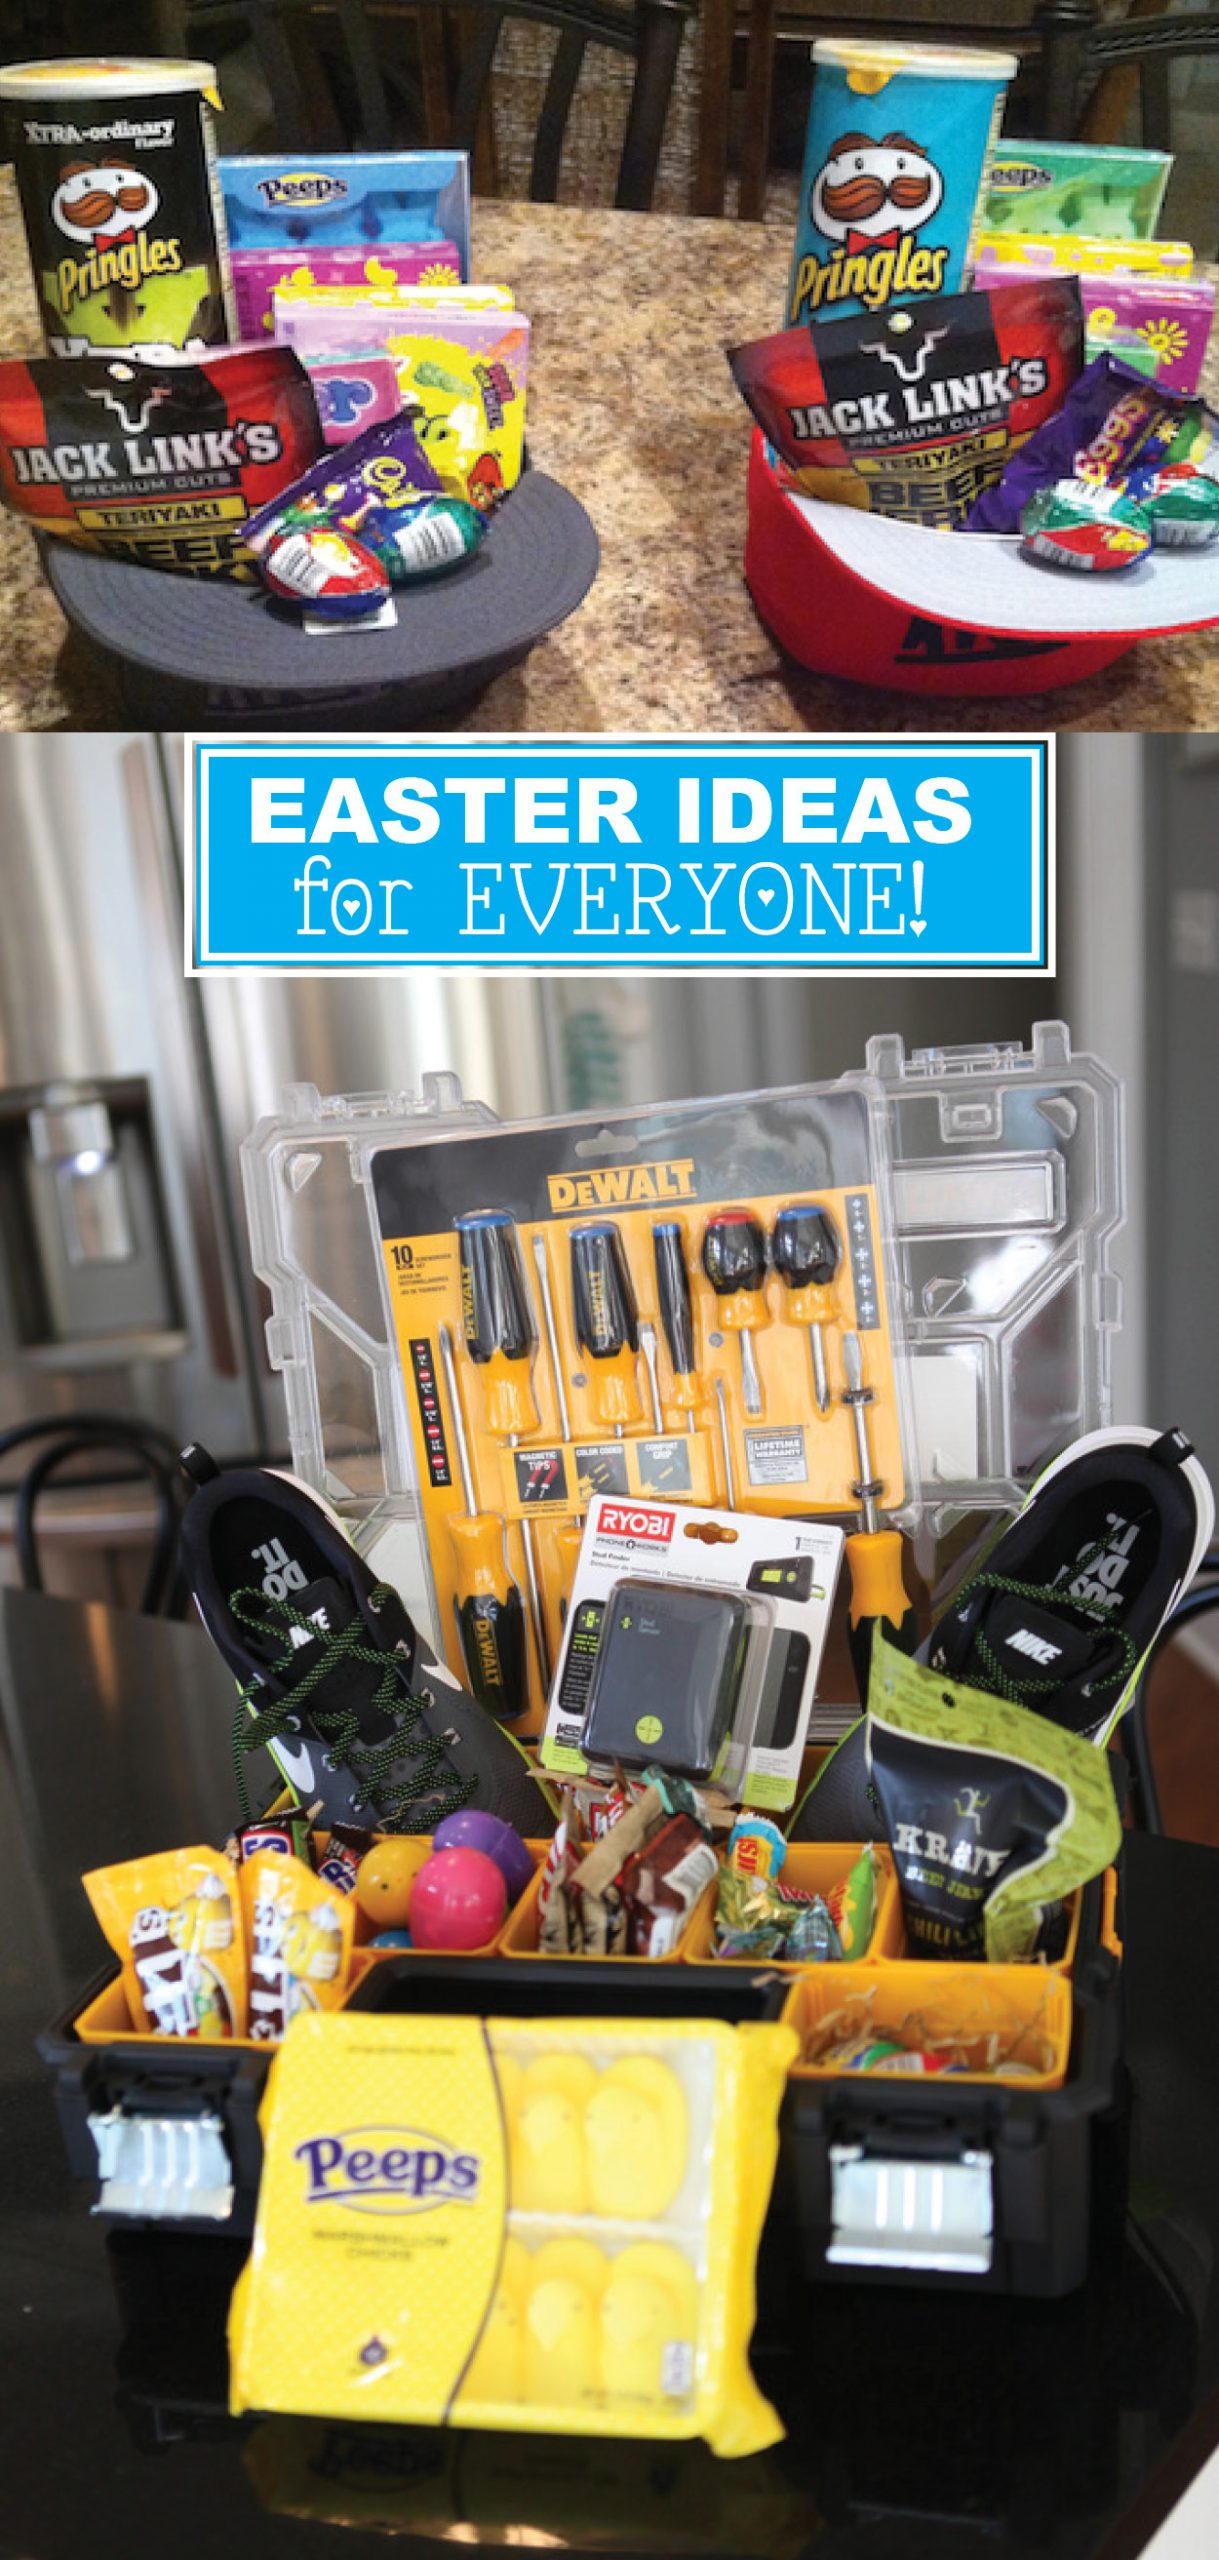 Easter Ideas for Everyone!